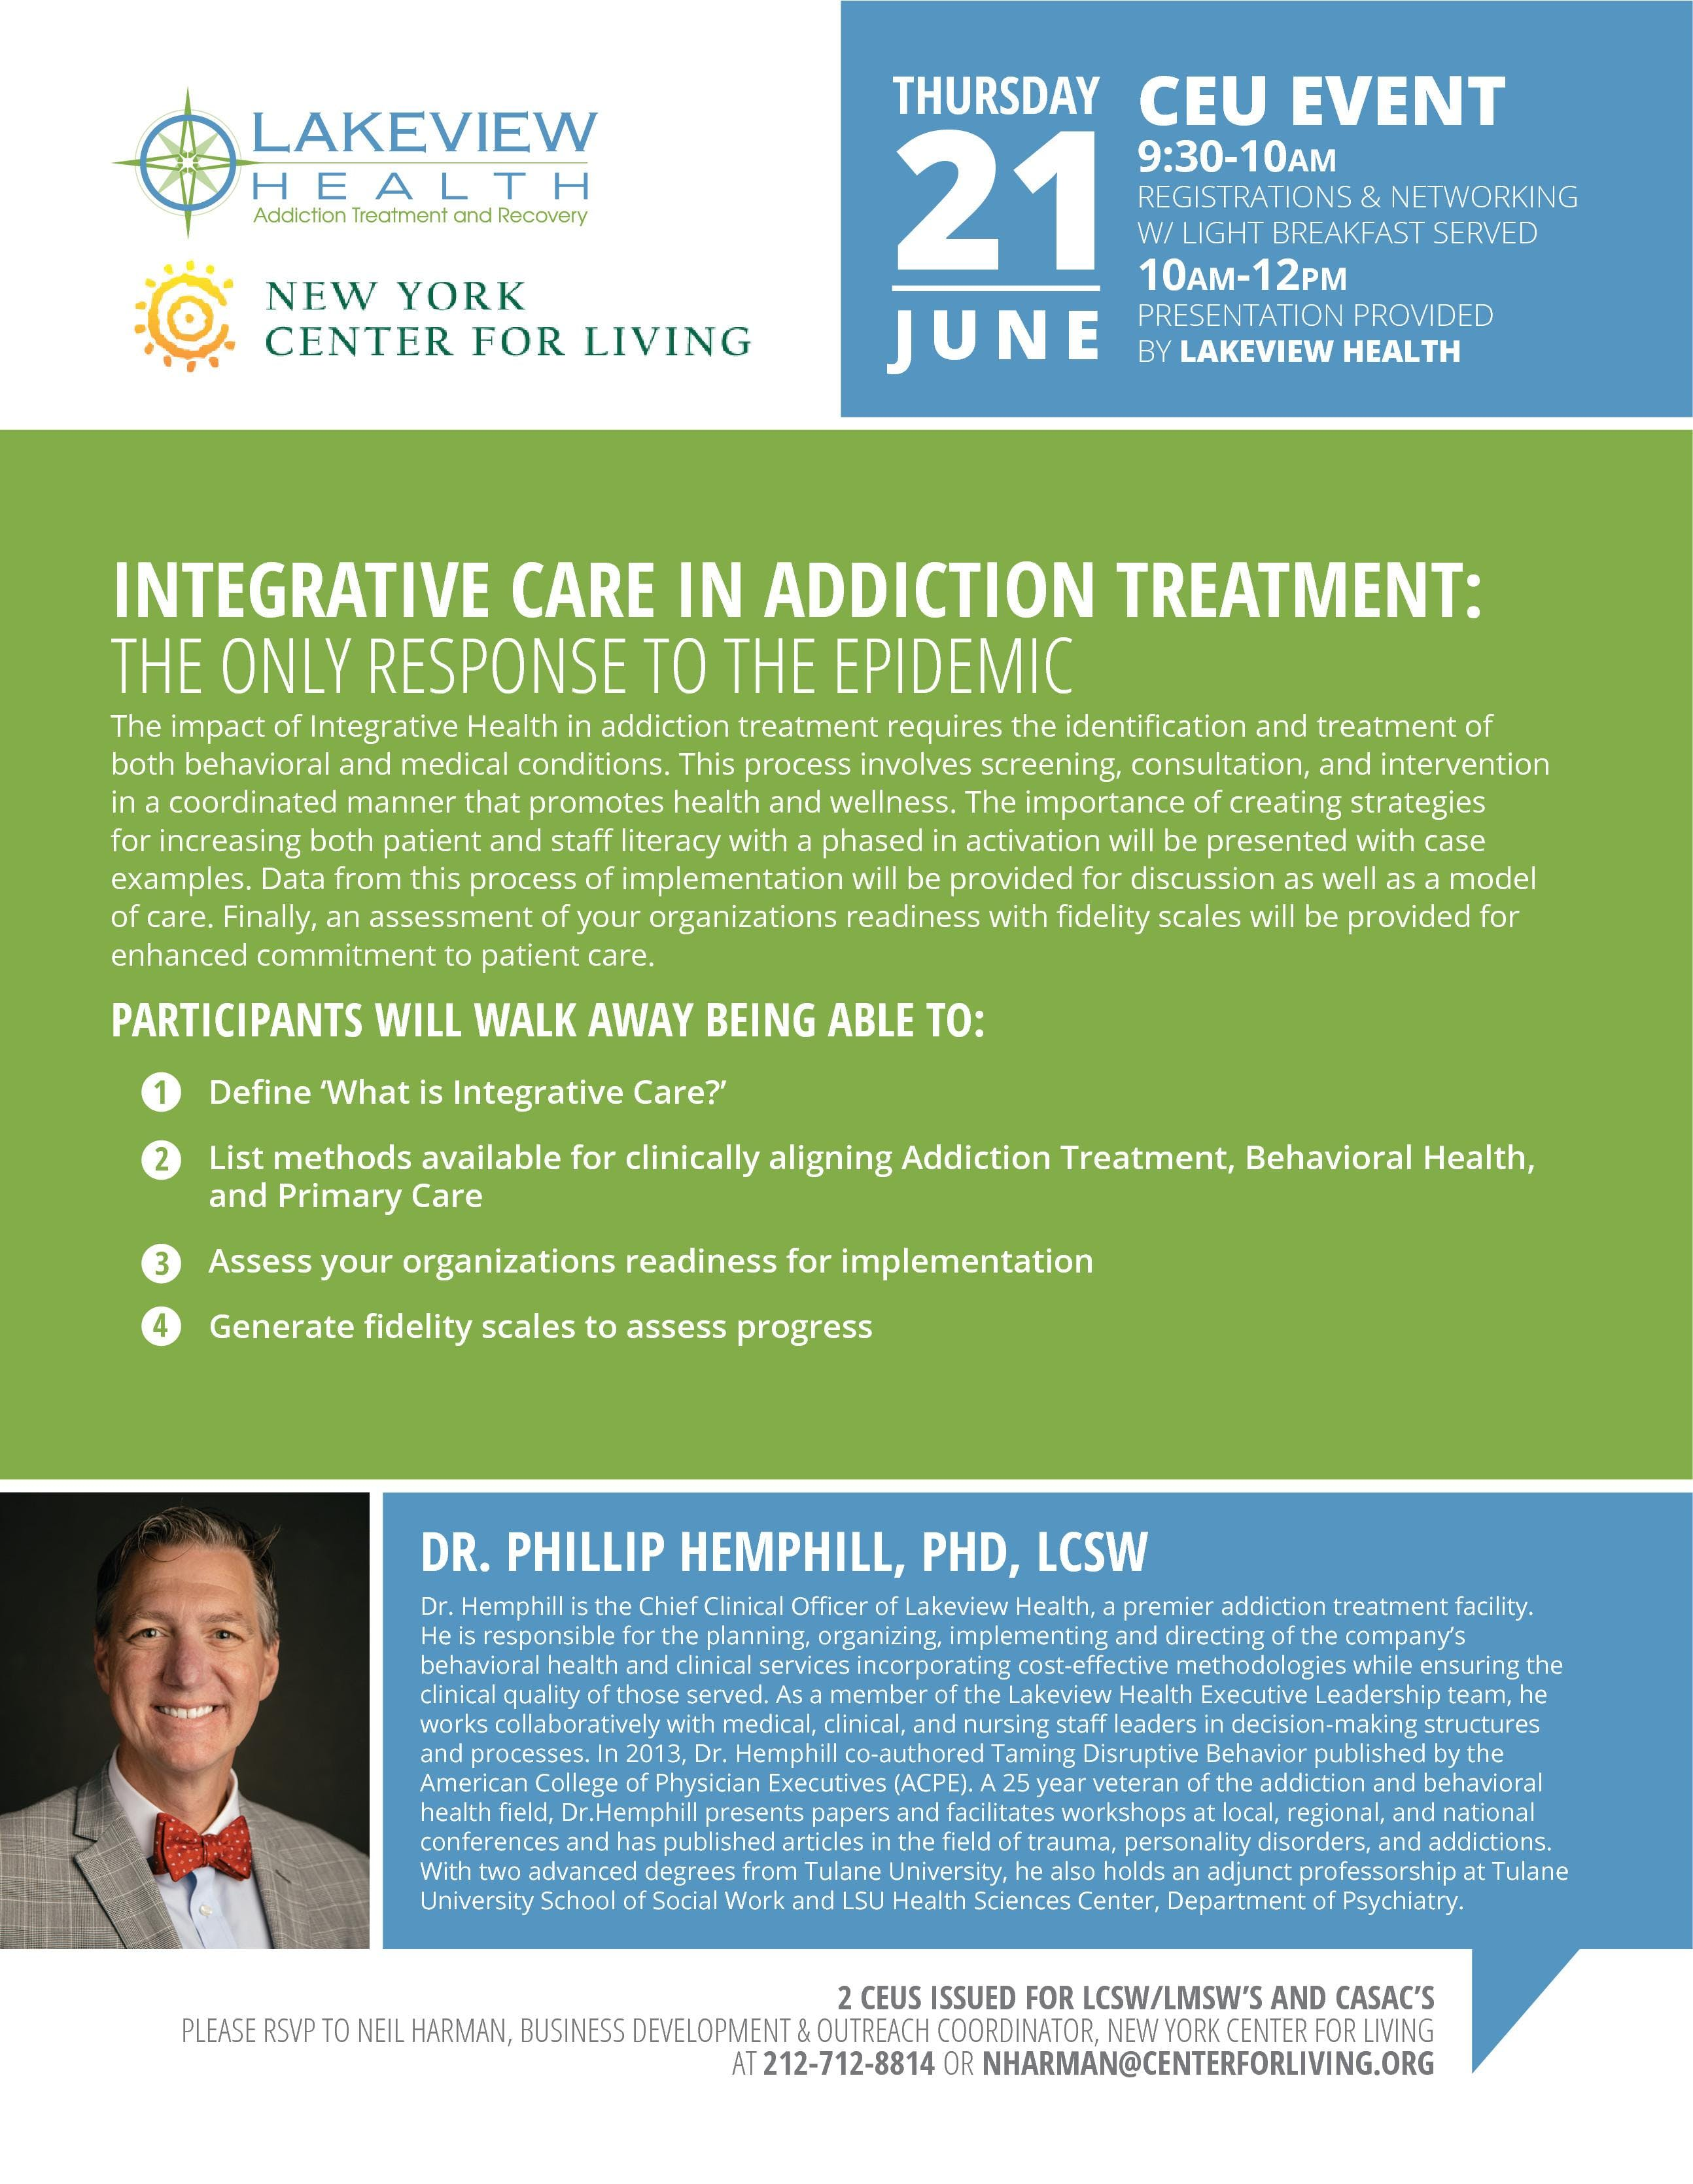 Integrative Care in Addiction Treatment The Only Response to the Epidemic